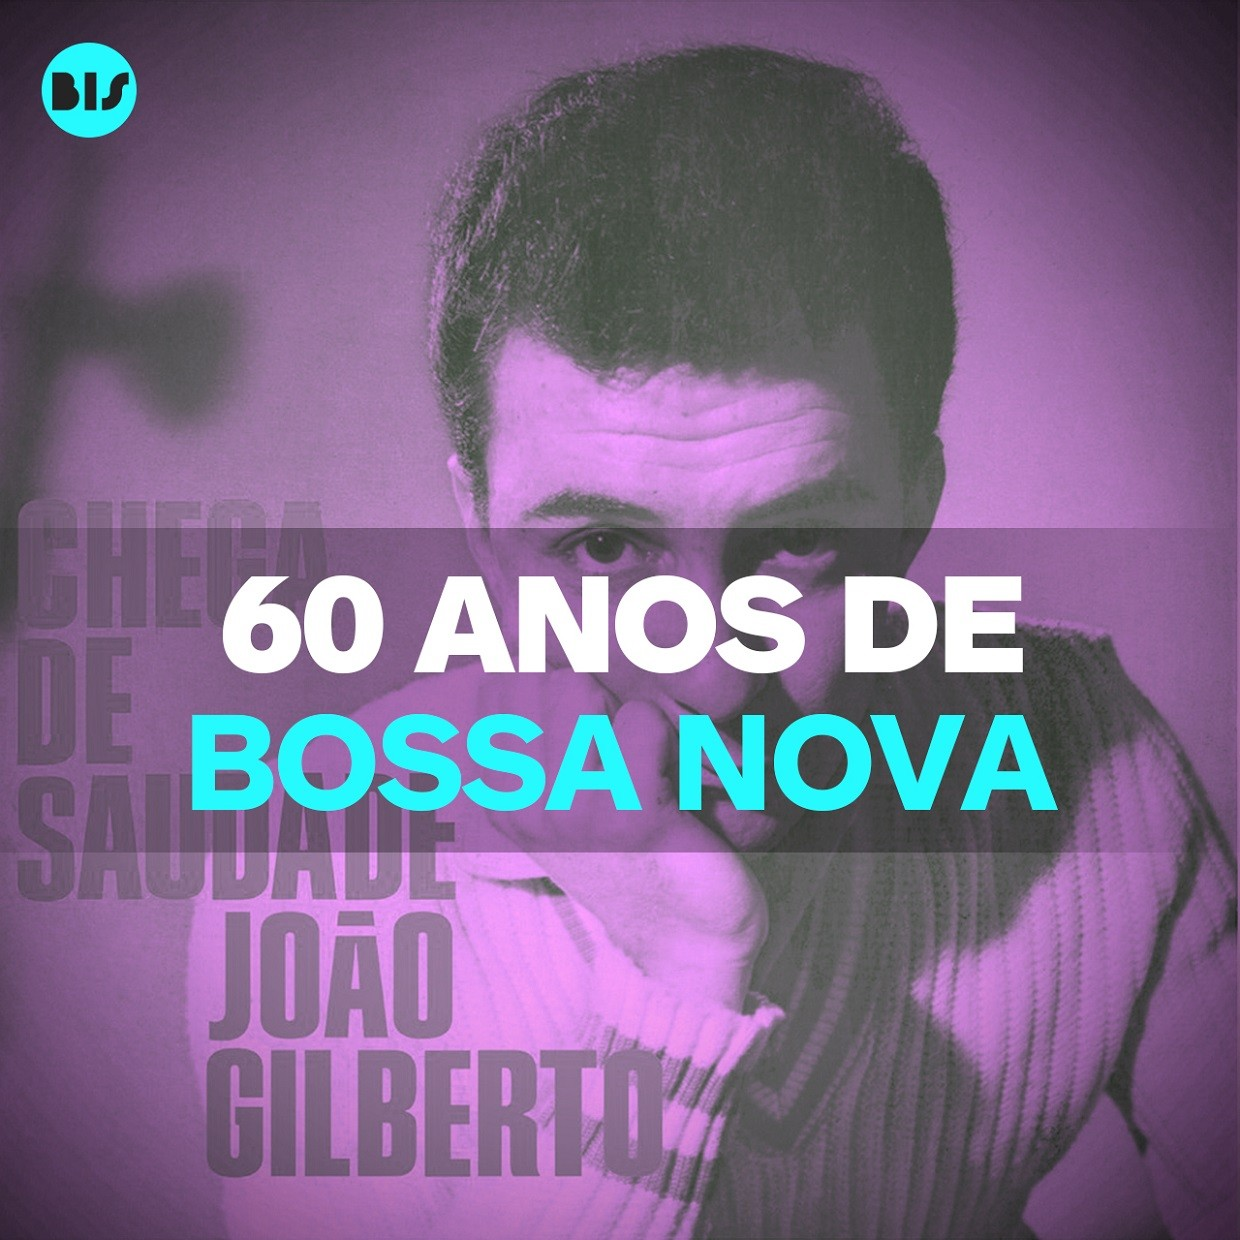 Playlist exclusiva do Bis no Spotify rene os maiores sucessos dos 60 anos da Bossa Nova (Foto: Bis)